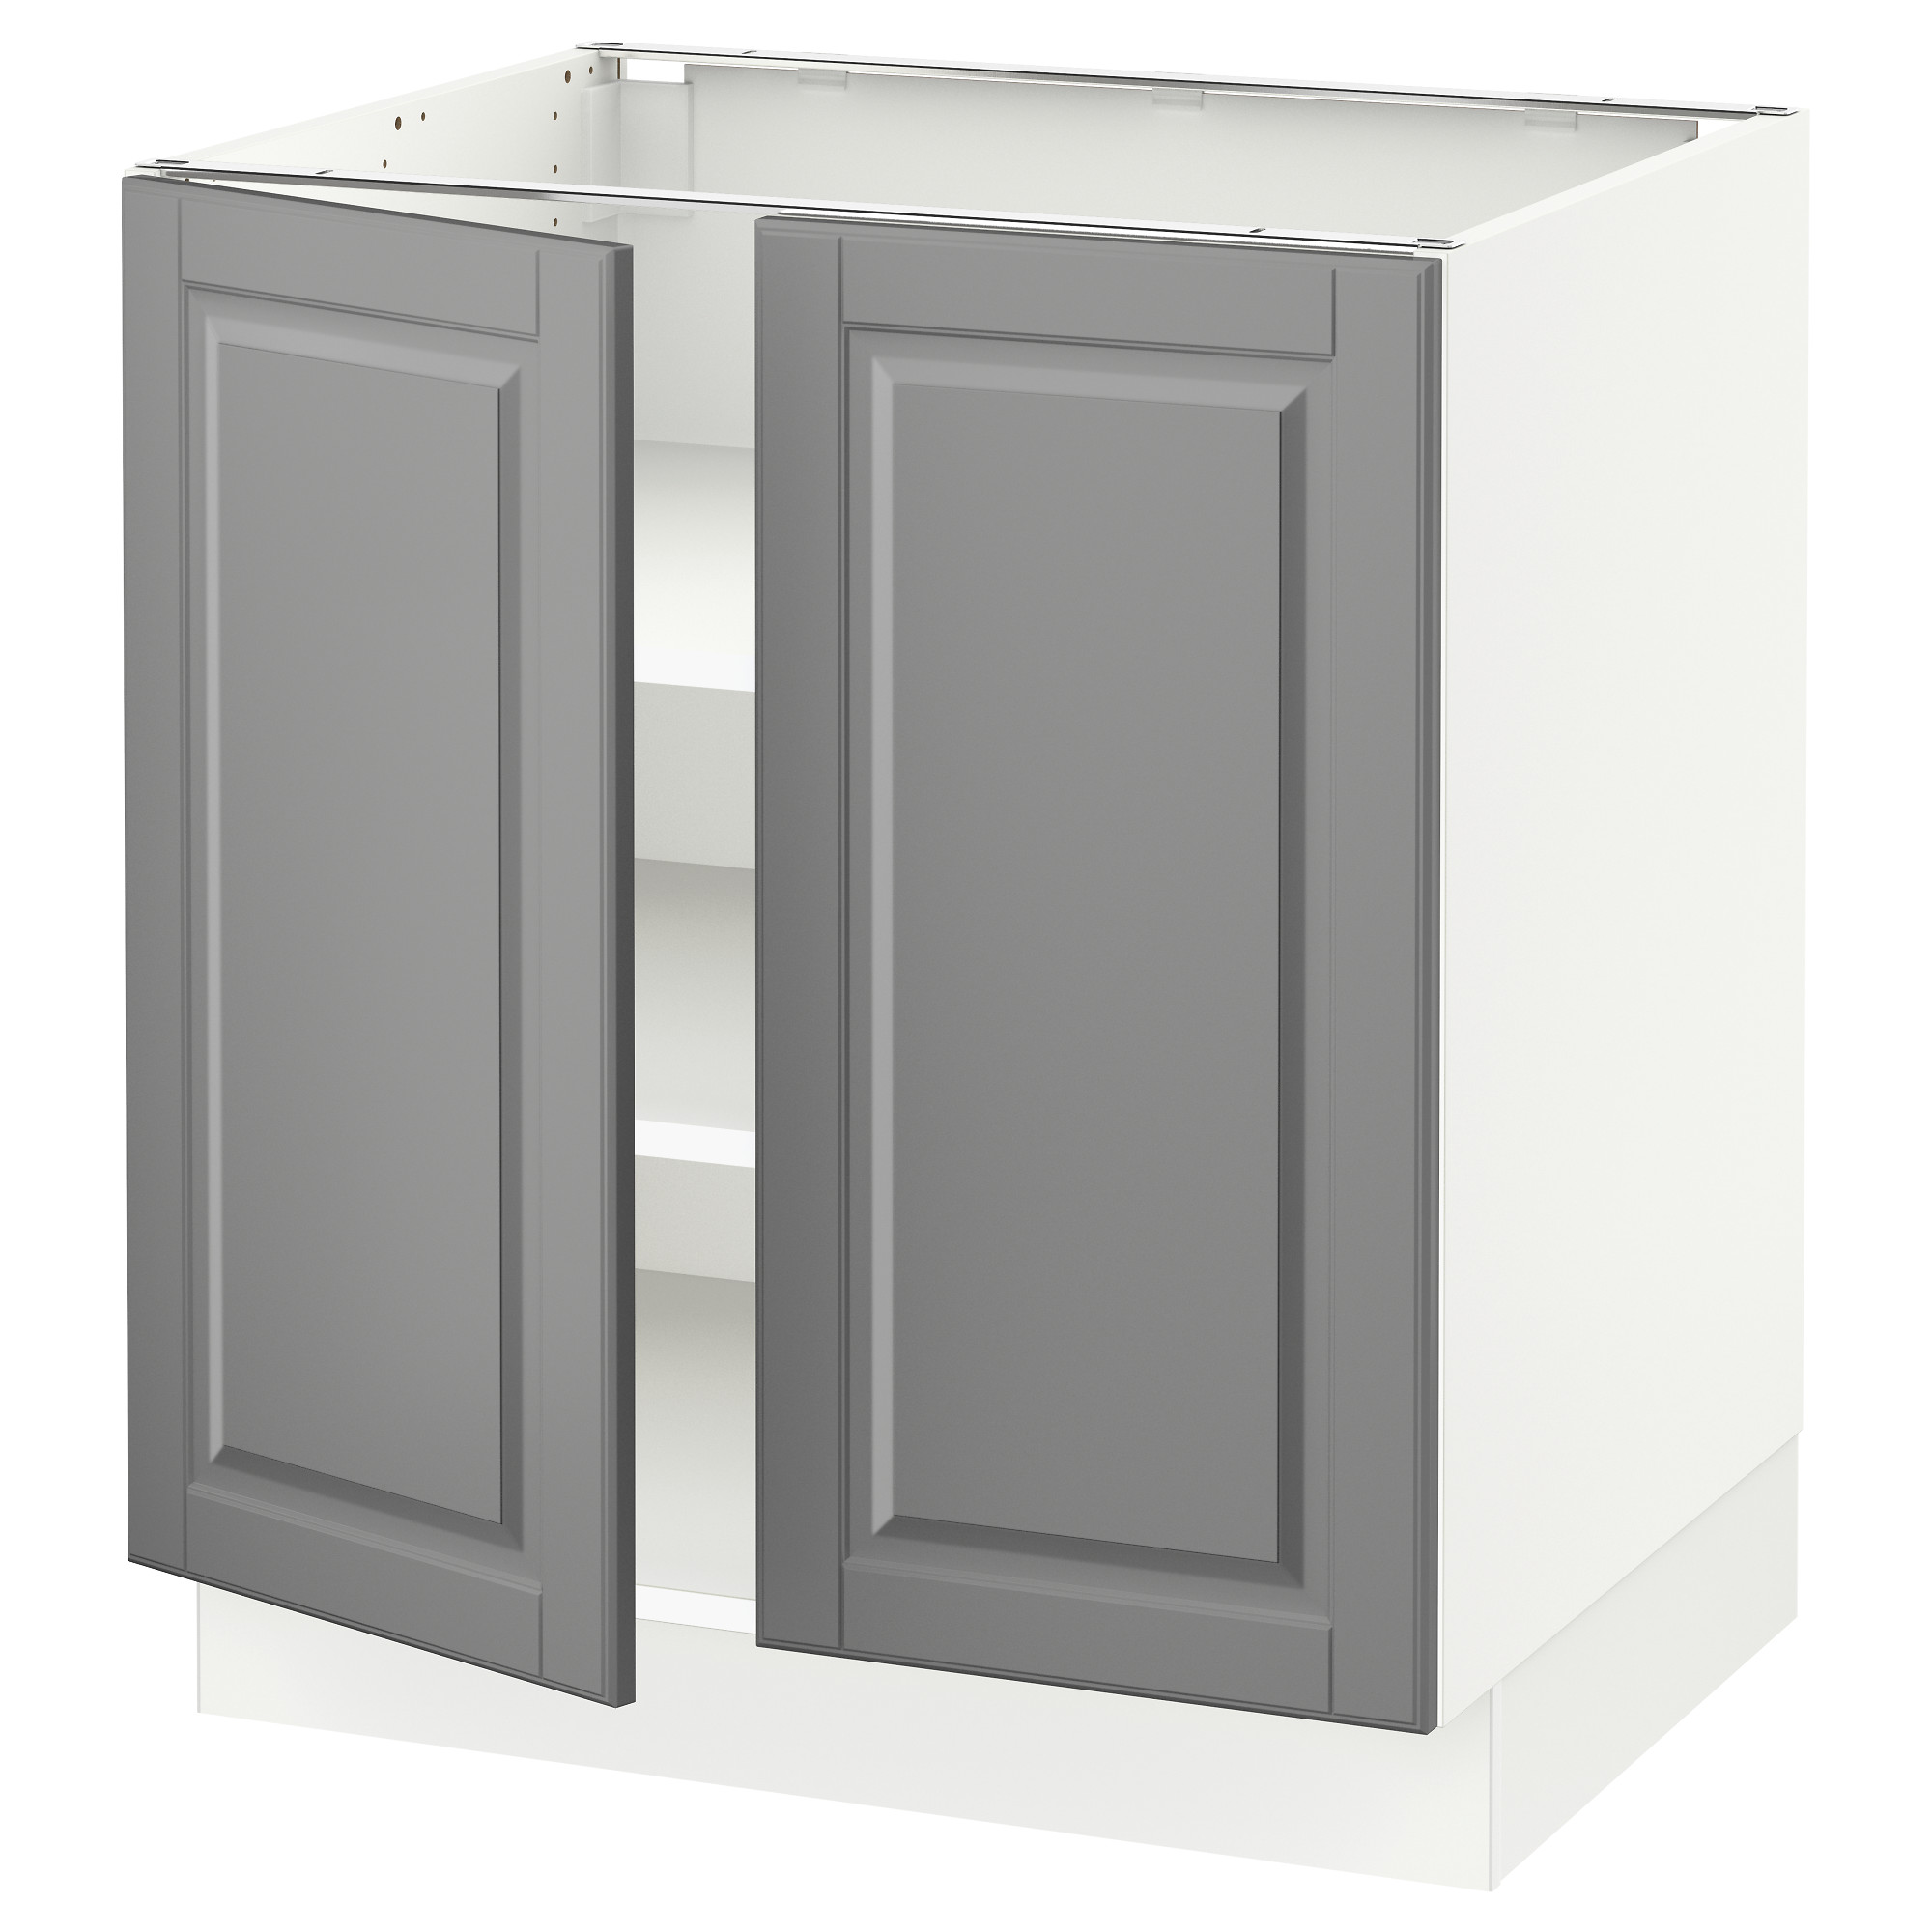 SEKTION Base Cabinet With Shelves/2 Doors, White, Bodbyn Gray Width: 30